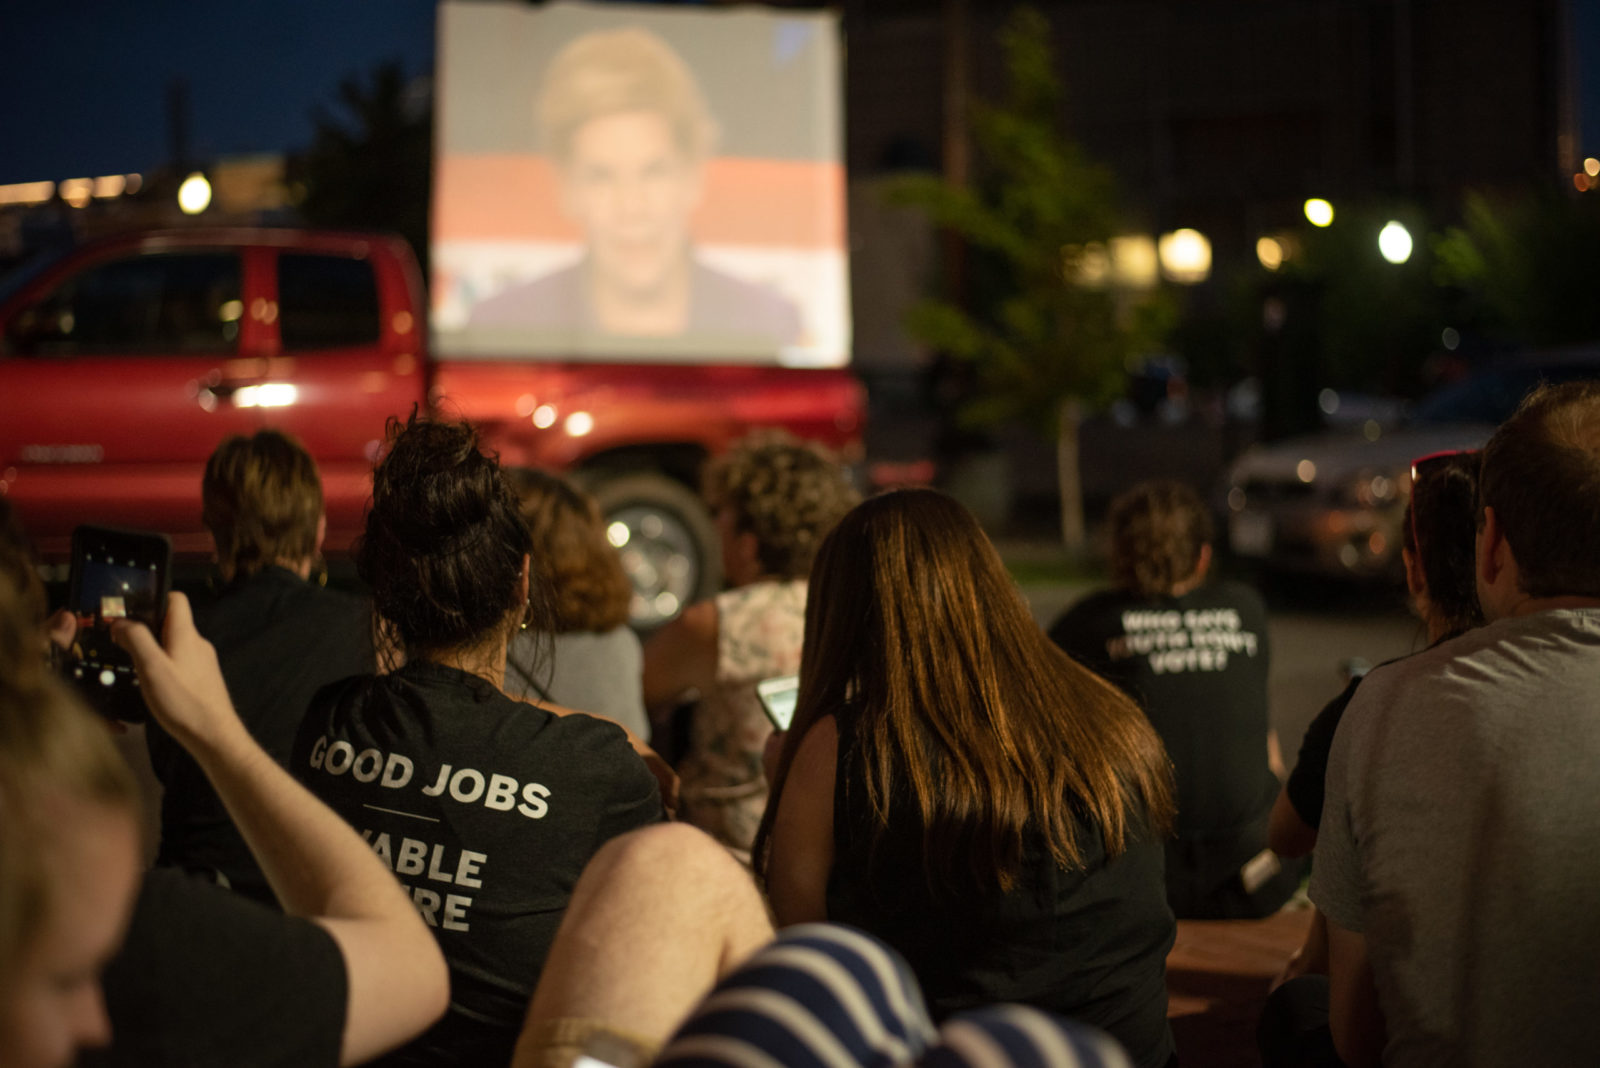 A group of people watch the presidential debate on a screen outside the DNC headquarters in DC during the sit-in.